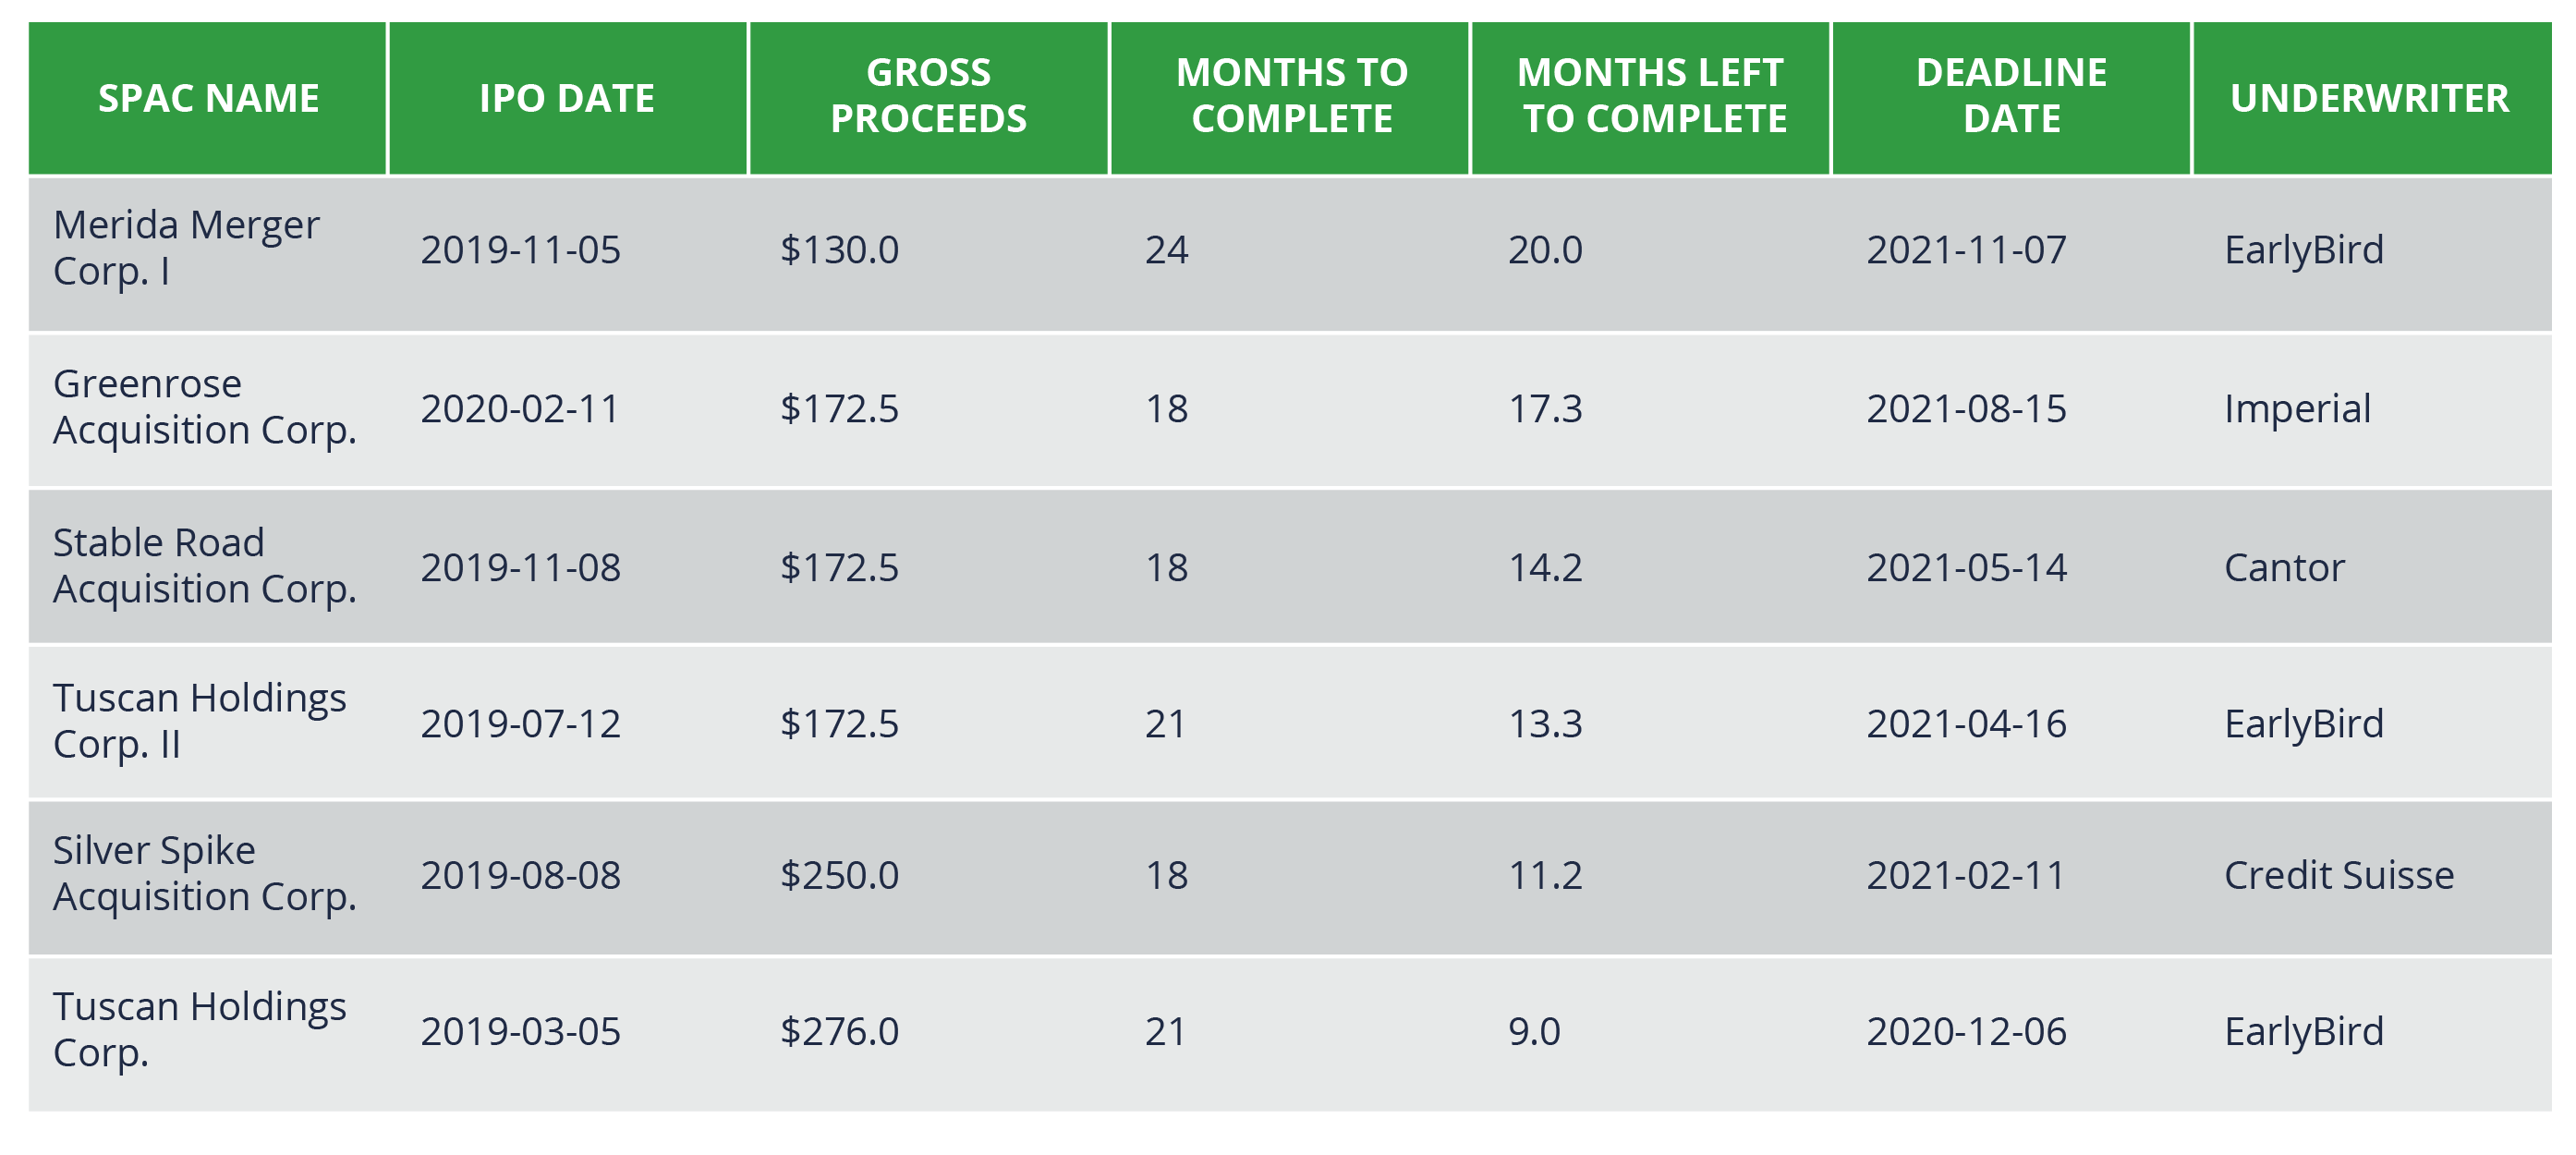 Table outlining various SPACs with their name, IPO date, gross proceeds, months left to complete and deadline dates.